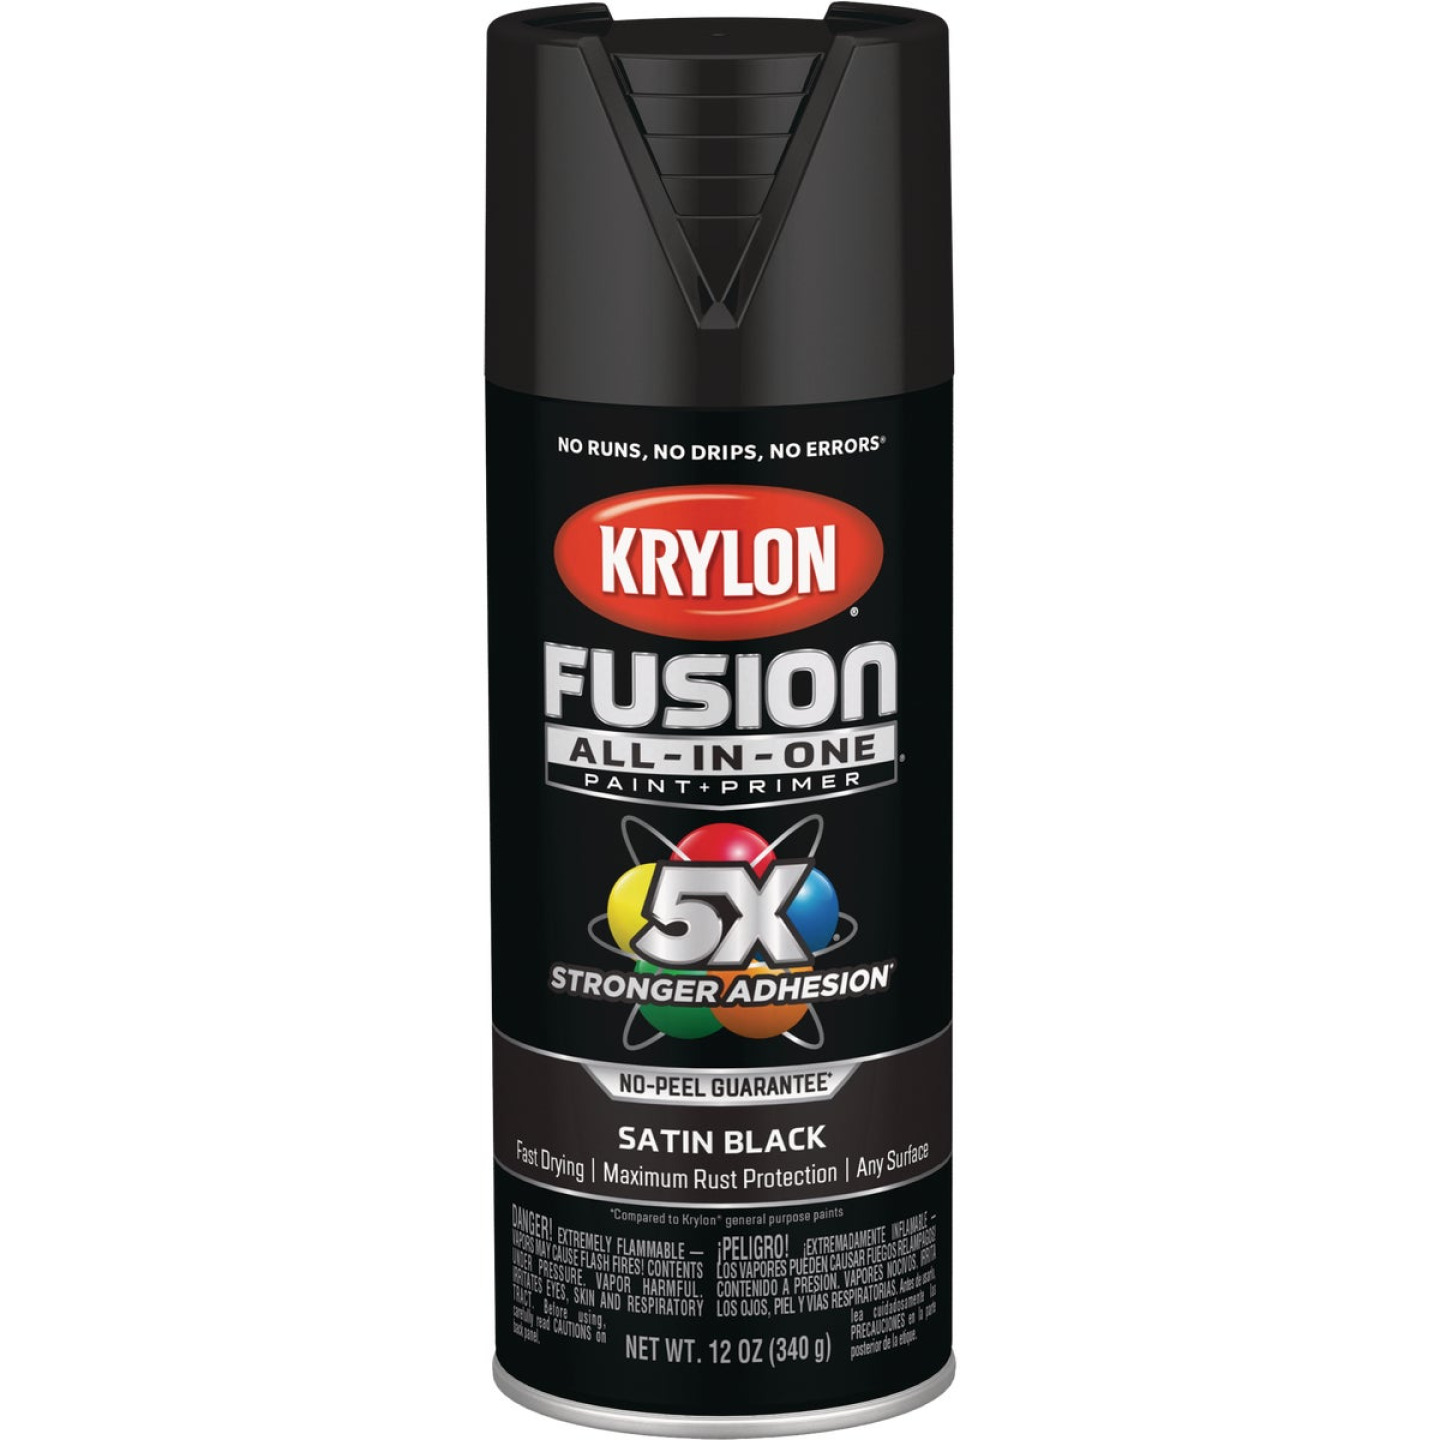 Krylon Fusion All-In-One Satin Spray Paint & Primer, Black Image 1